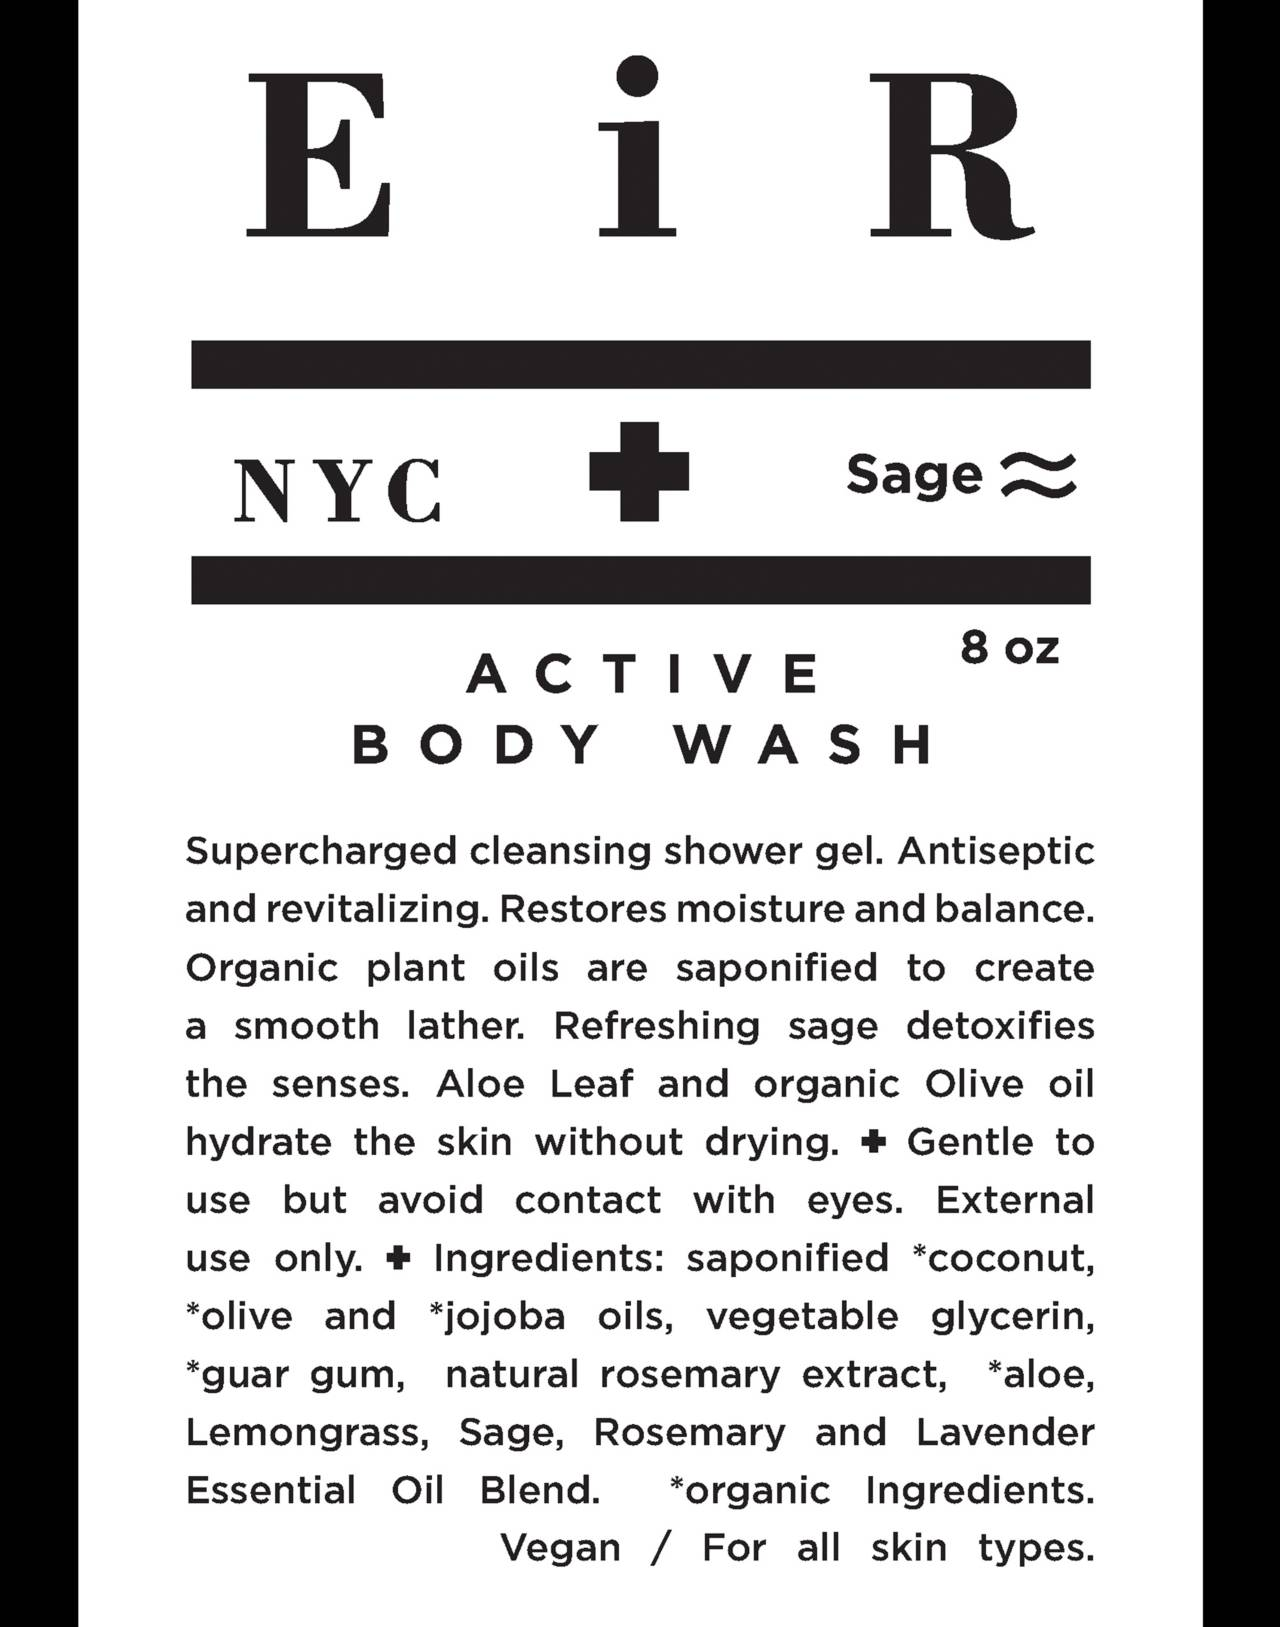 Eir NYC® Active Body Wash in one color image 3